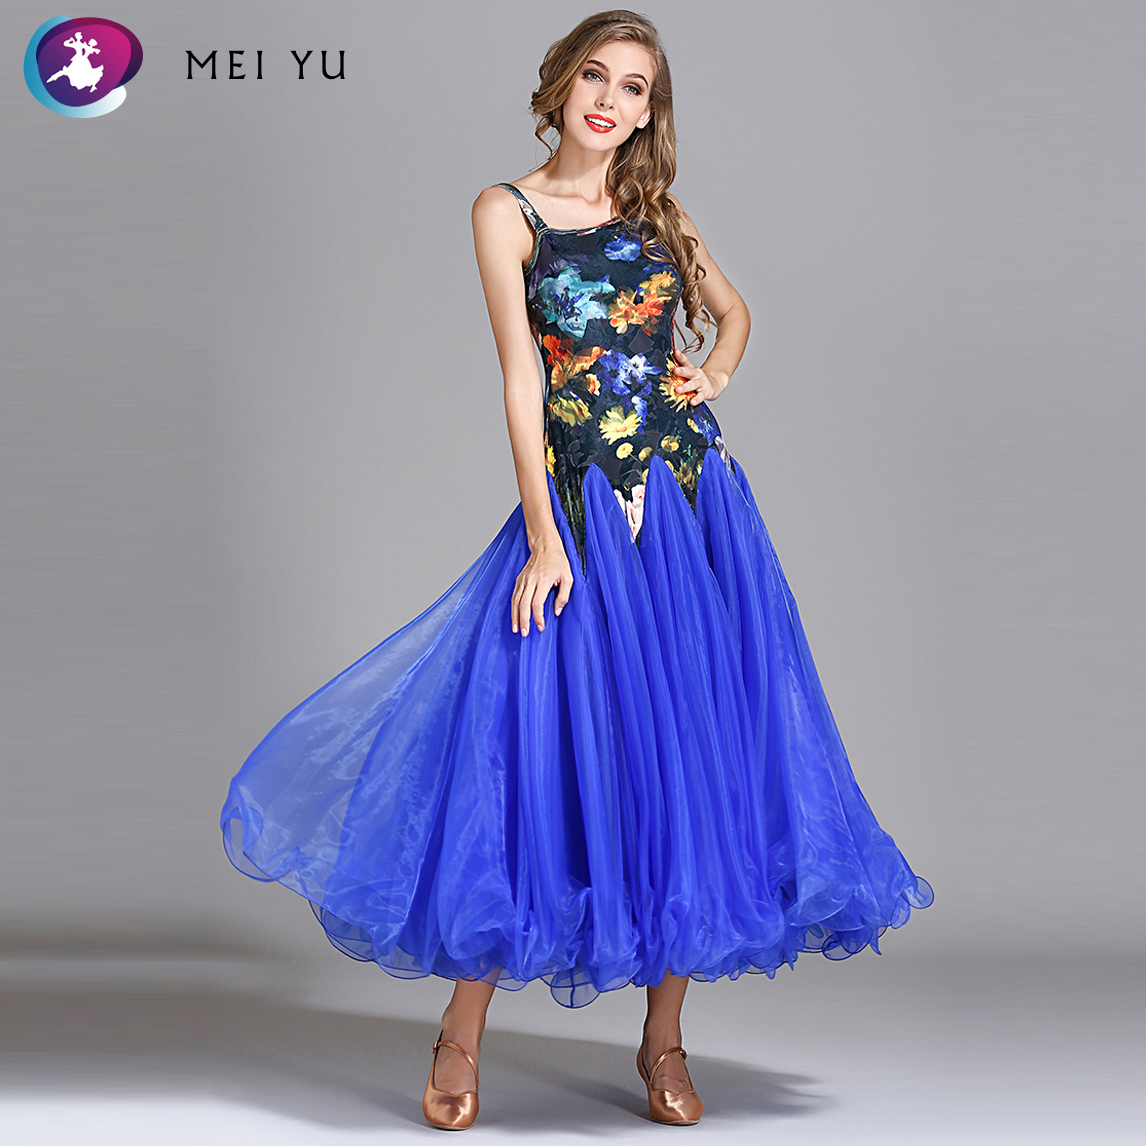 Ballroom Systematic Mei Yu My793 2018 New Modern Dance Costume Waltzing Tango Women Adult Lady Dancing Dress Ballroom Costume Evening Party Dress